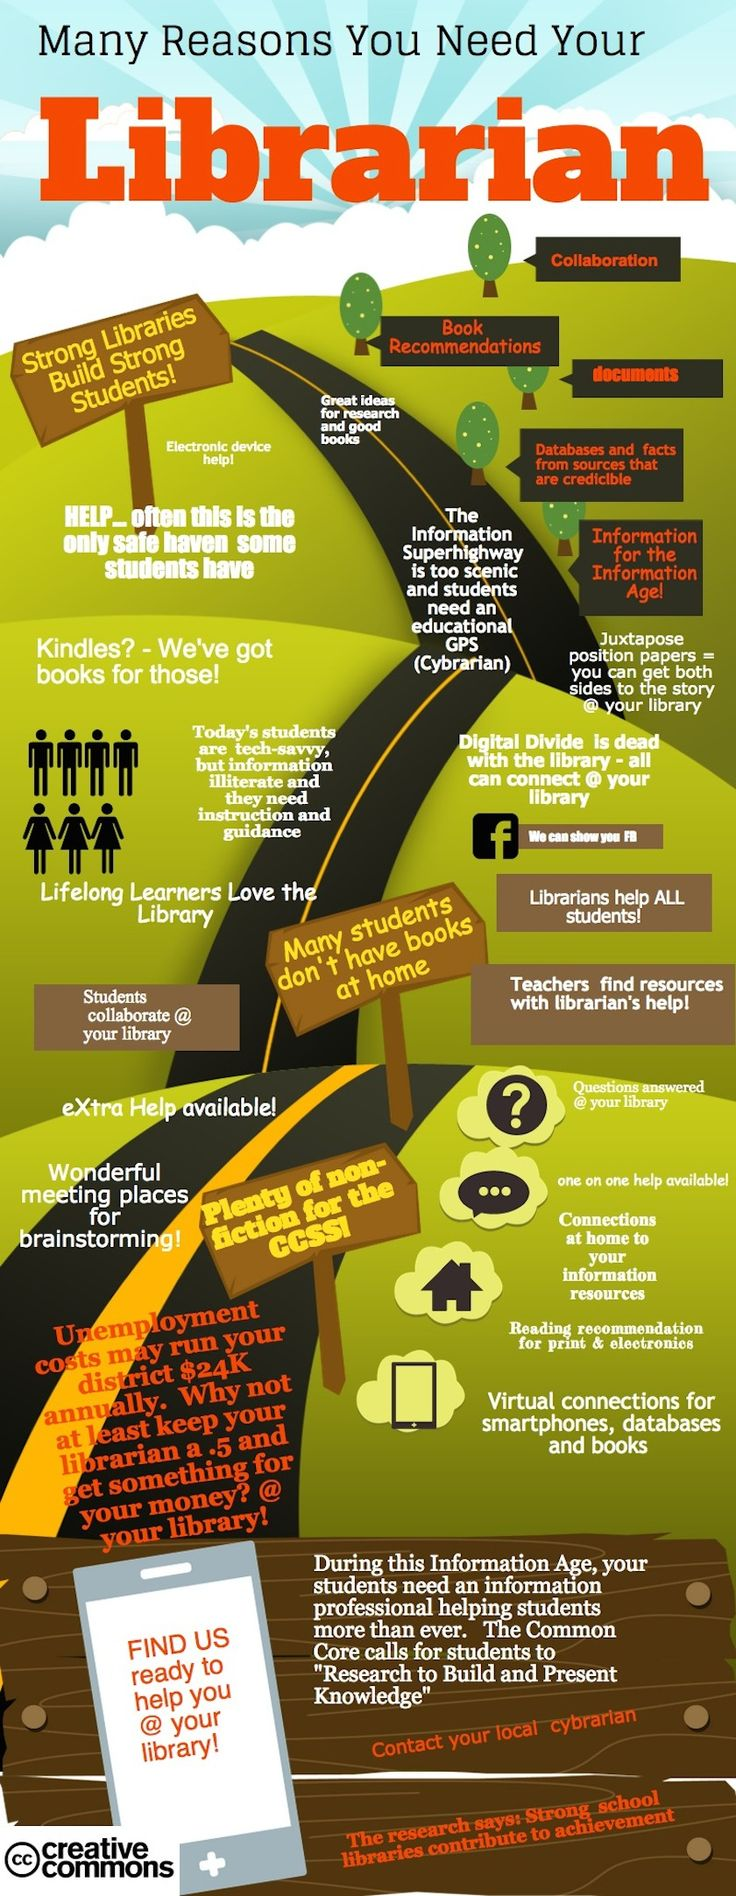 Many reasons you need a librarian (infographic)